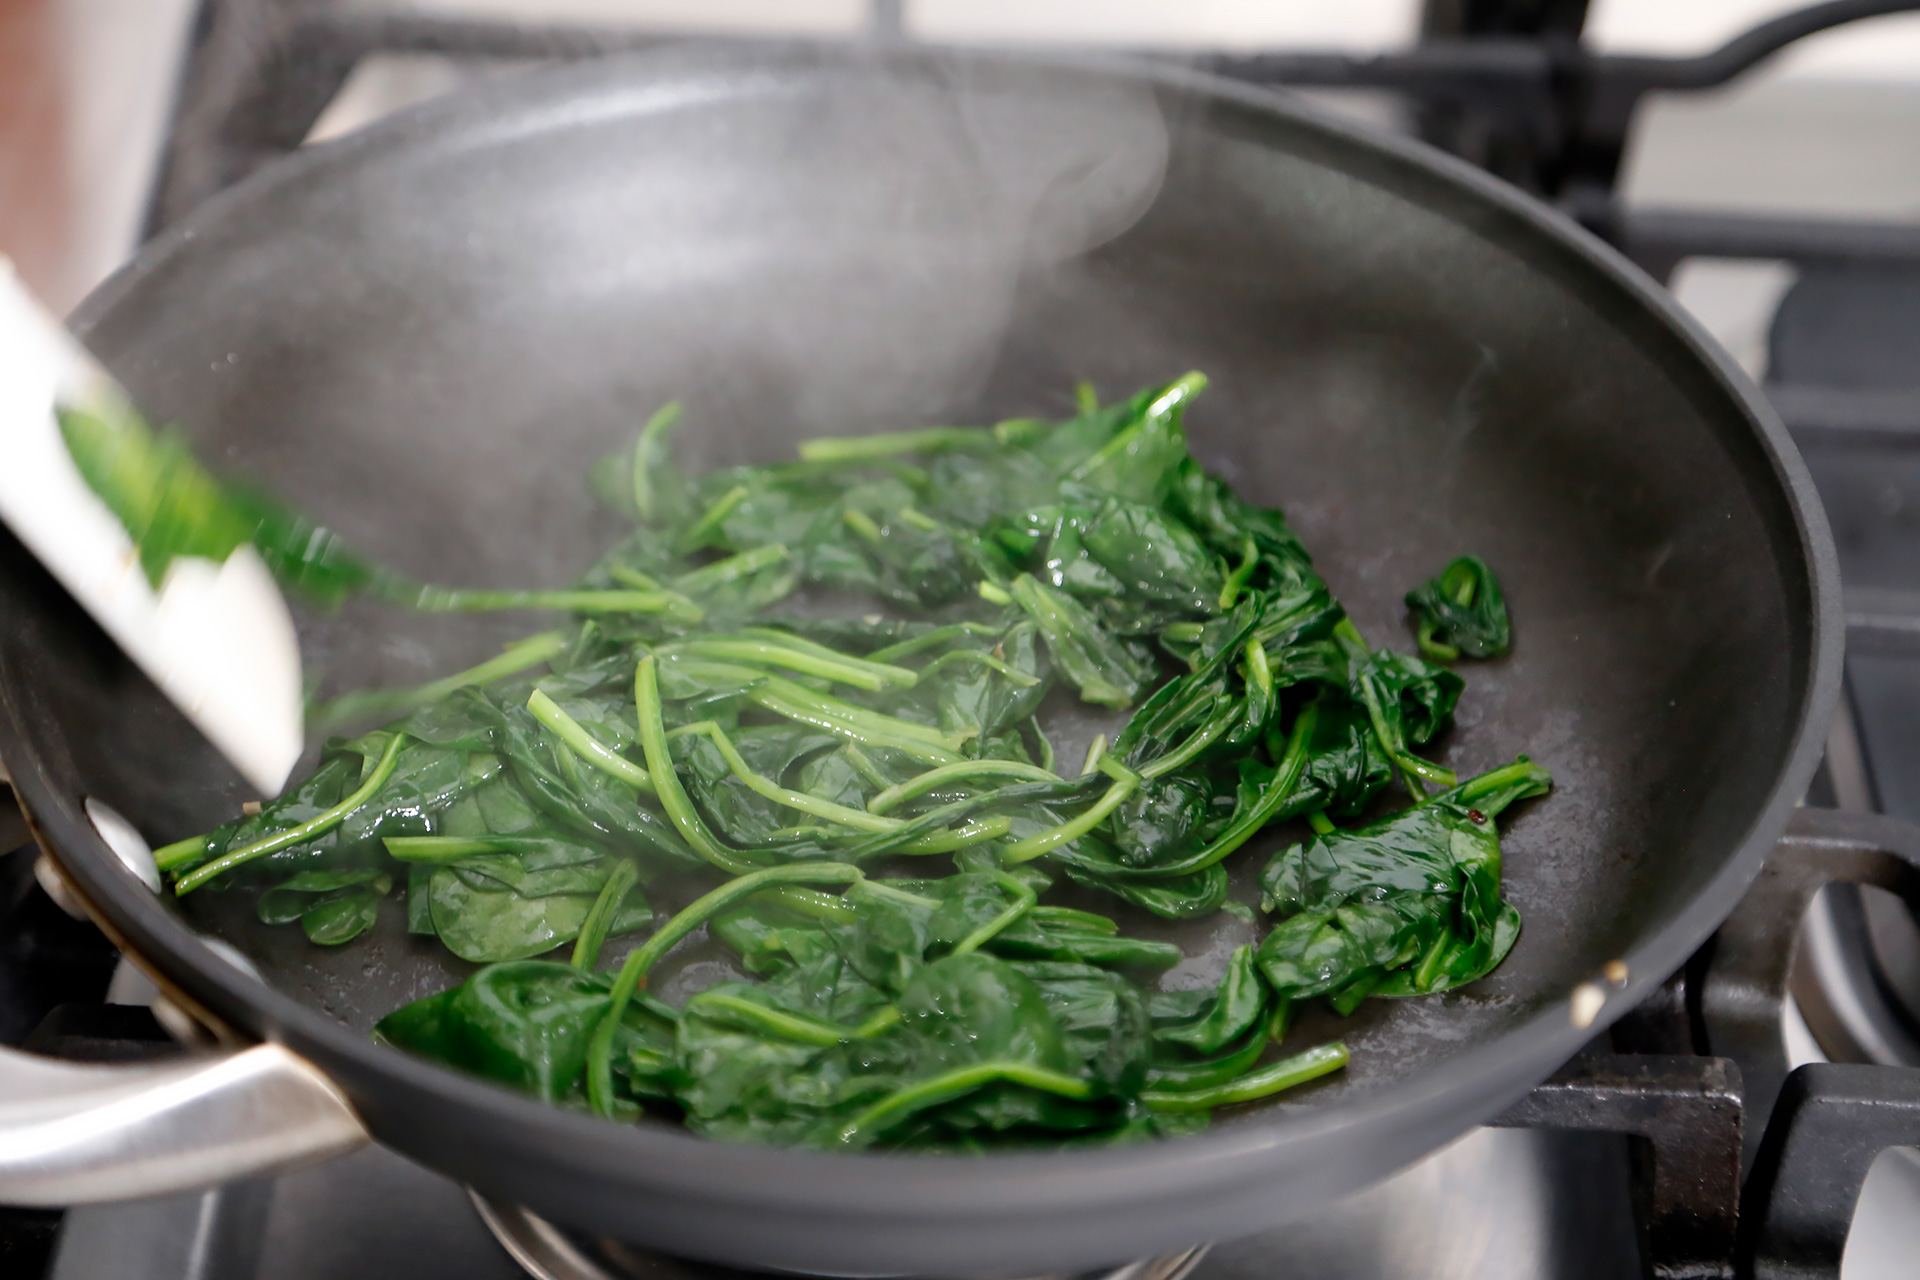 Add the spinach. Cook just until wilted, then transfer to a colander.